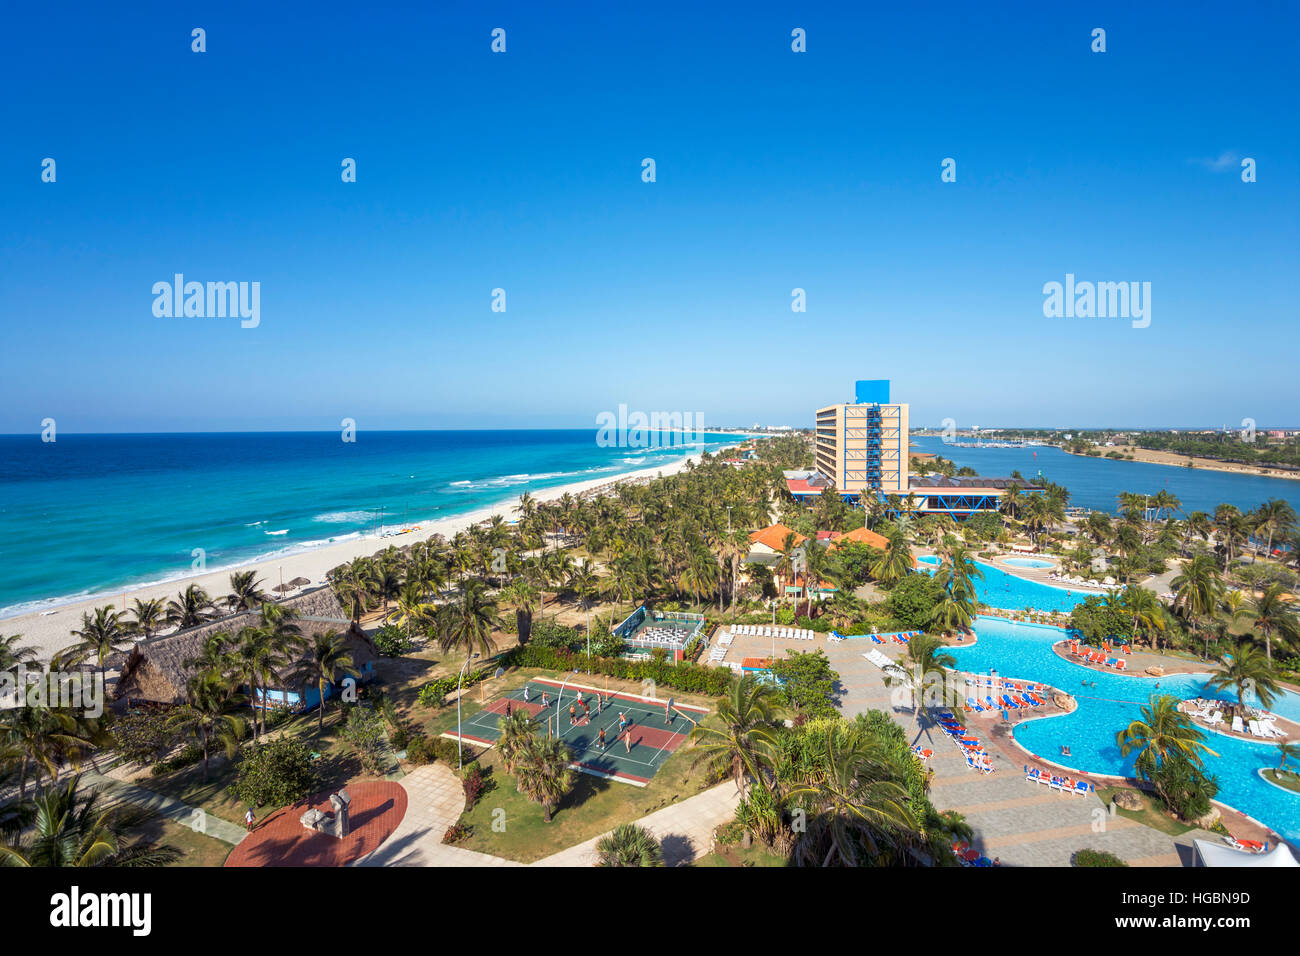 Stock photo varadero beach cuba view over the resort from the gran caribe club puntarena hotel